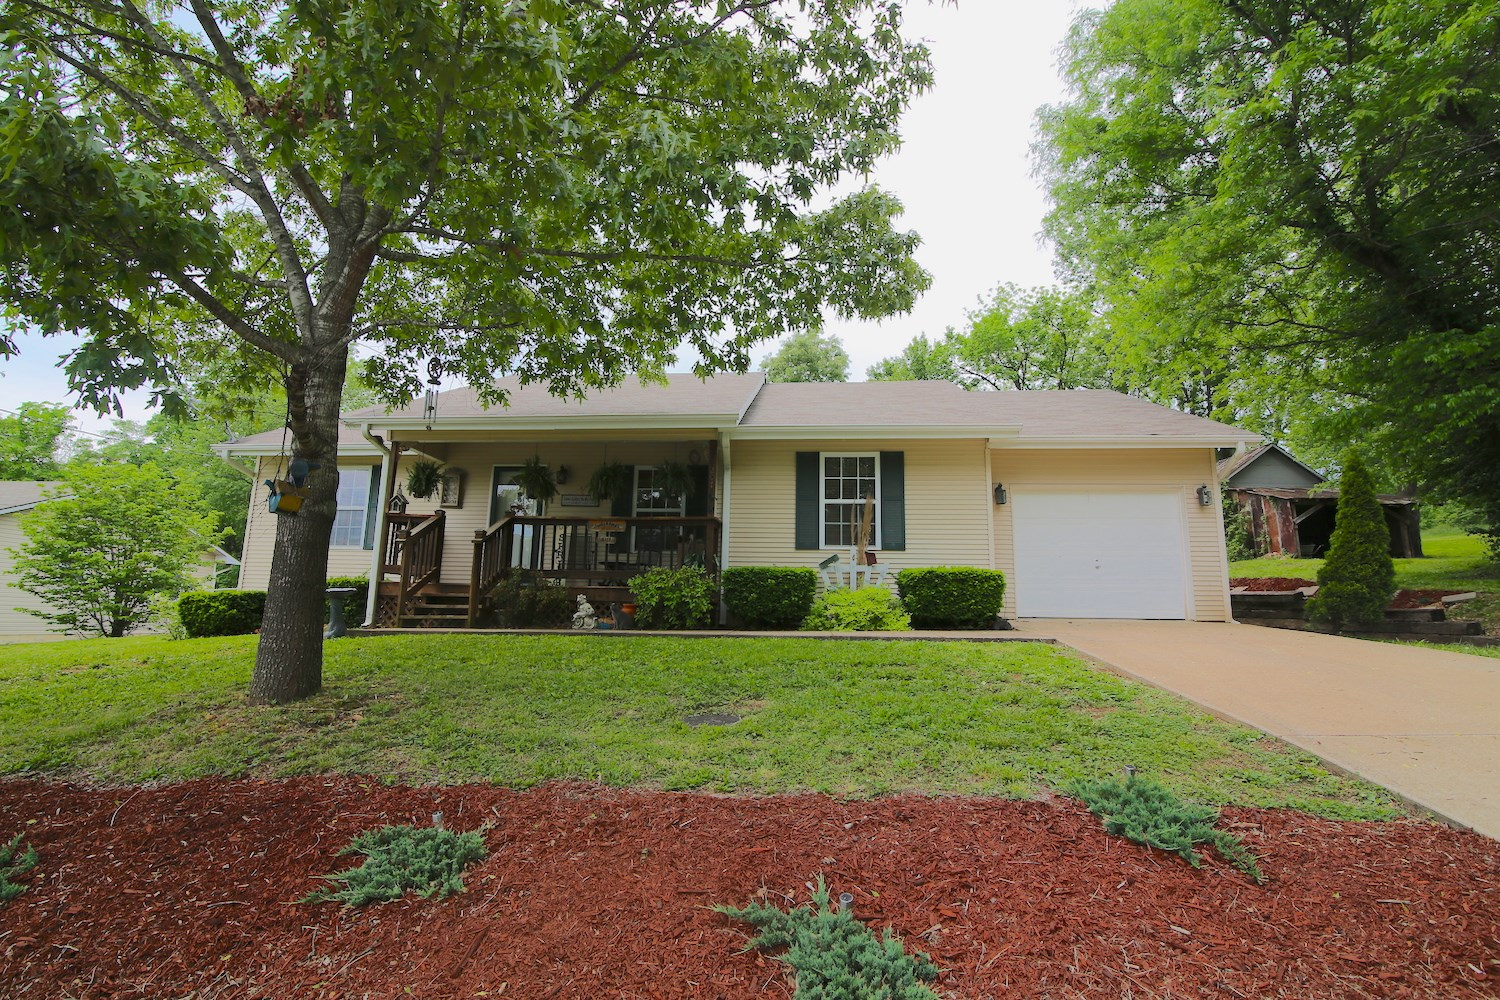 Home for Sale in Thayer, Missouri